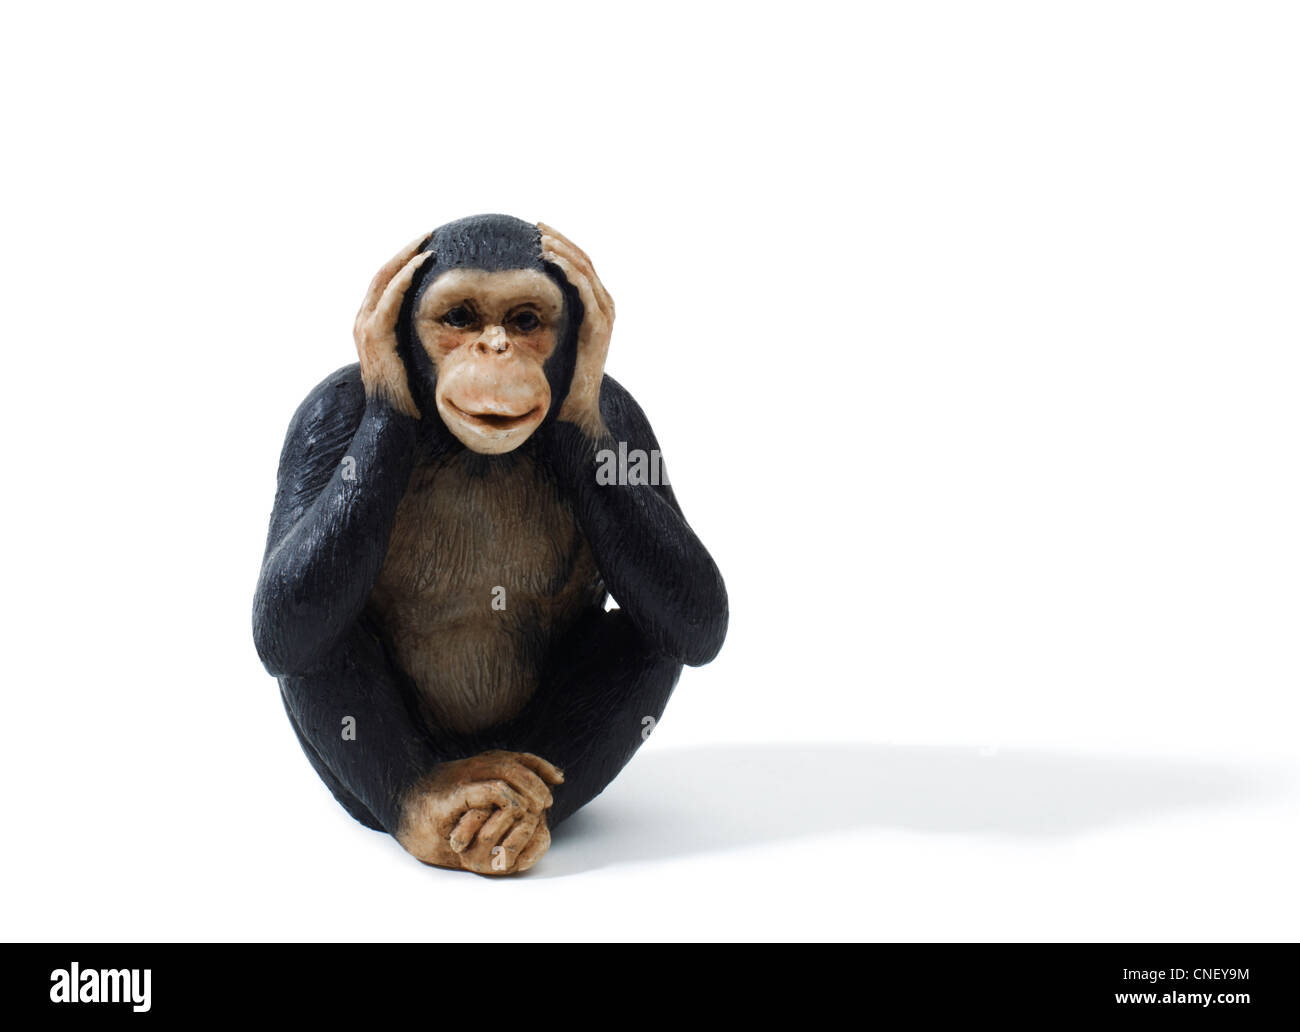 Studio shot of a toy monkey holding hands over ears. hear no evil - Stock Image